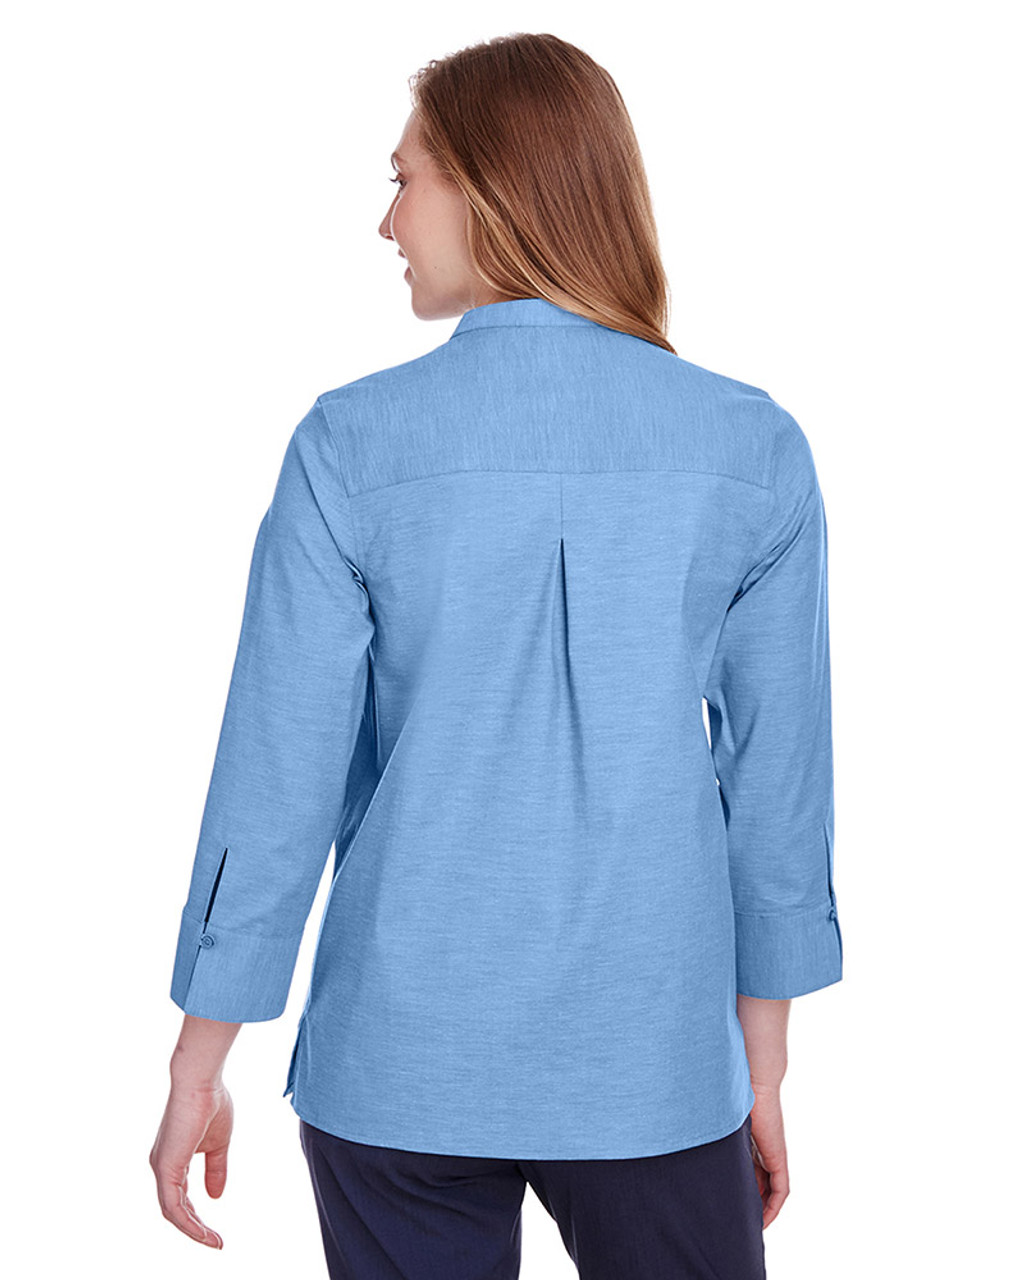 French Blue - black, DG562W Devon & Jones Ladies' Crown Collection™ Stretch Pinpoint Chambray 3/4 Sleeve Blouse | Blankclothing.ca